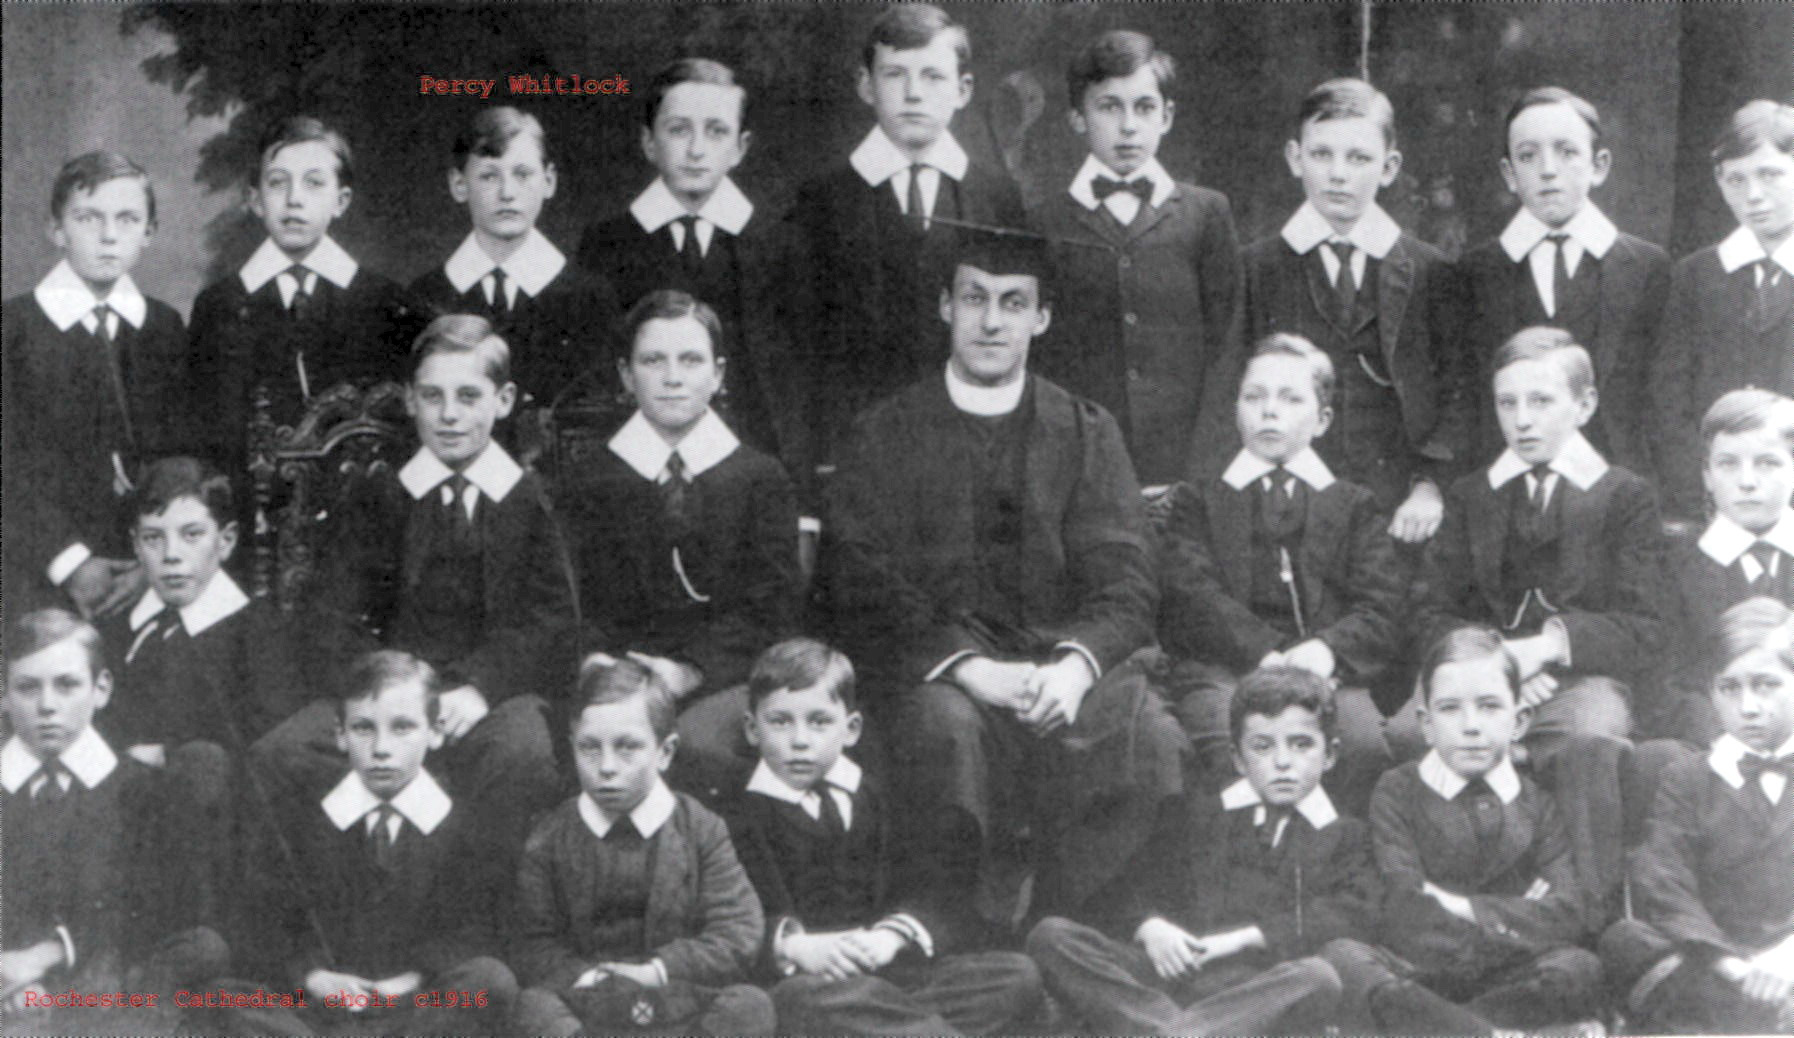 The photograph is from 1916 when Percy Whitlock was a chorister